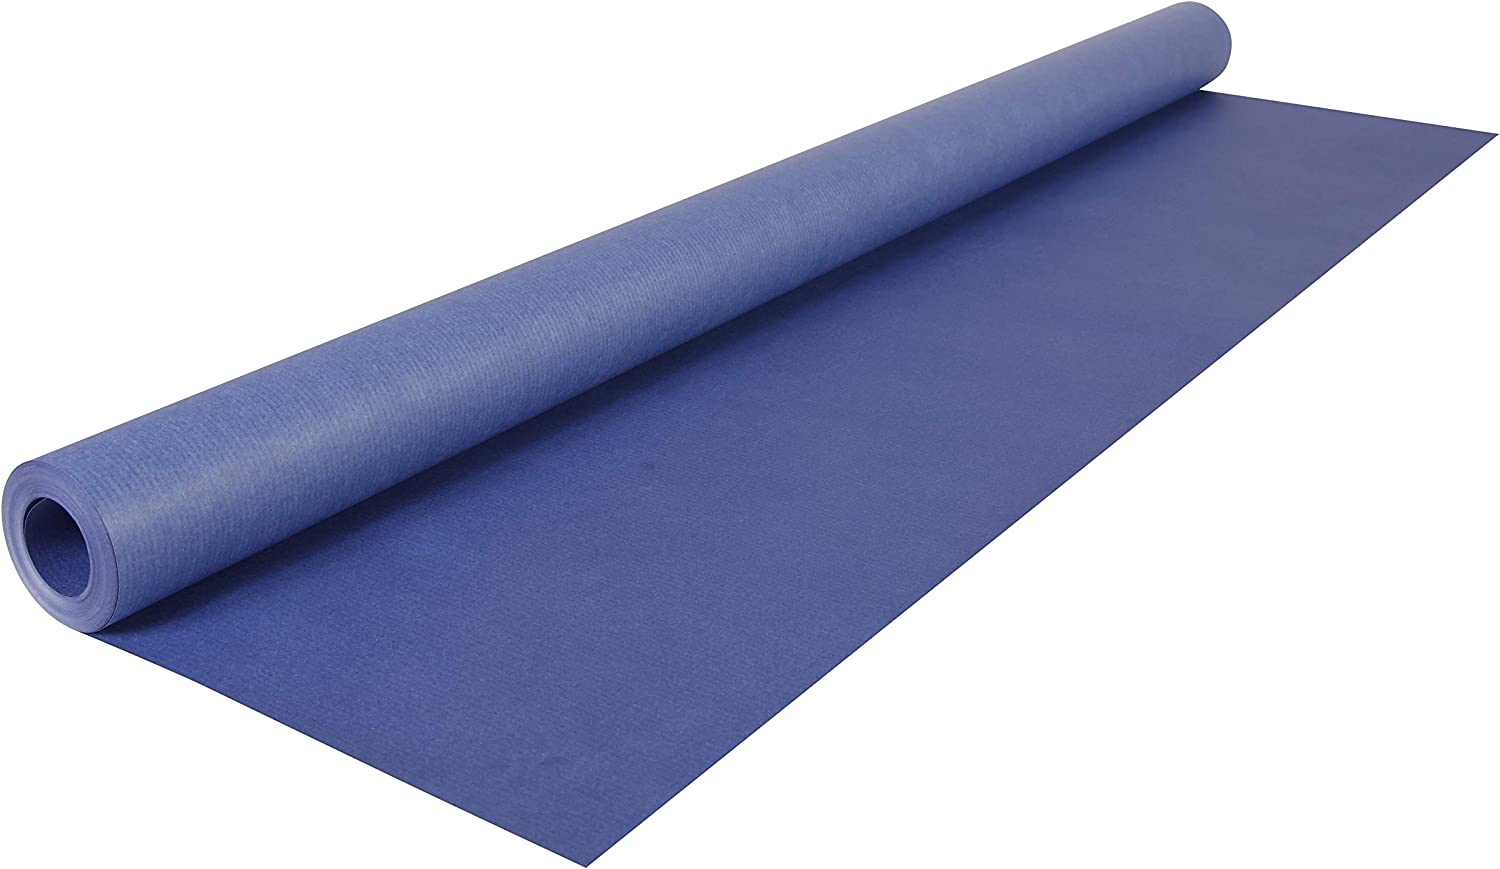 blu francese 10 x 0,70 m Clairefontaine Rotolo Kraft colorato